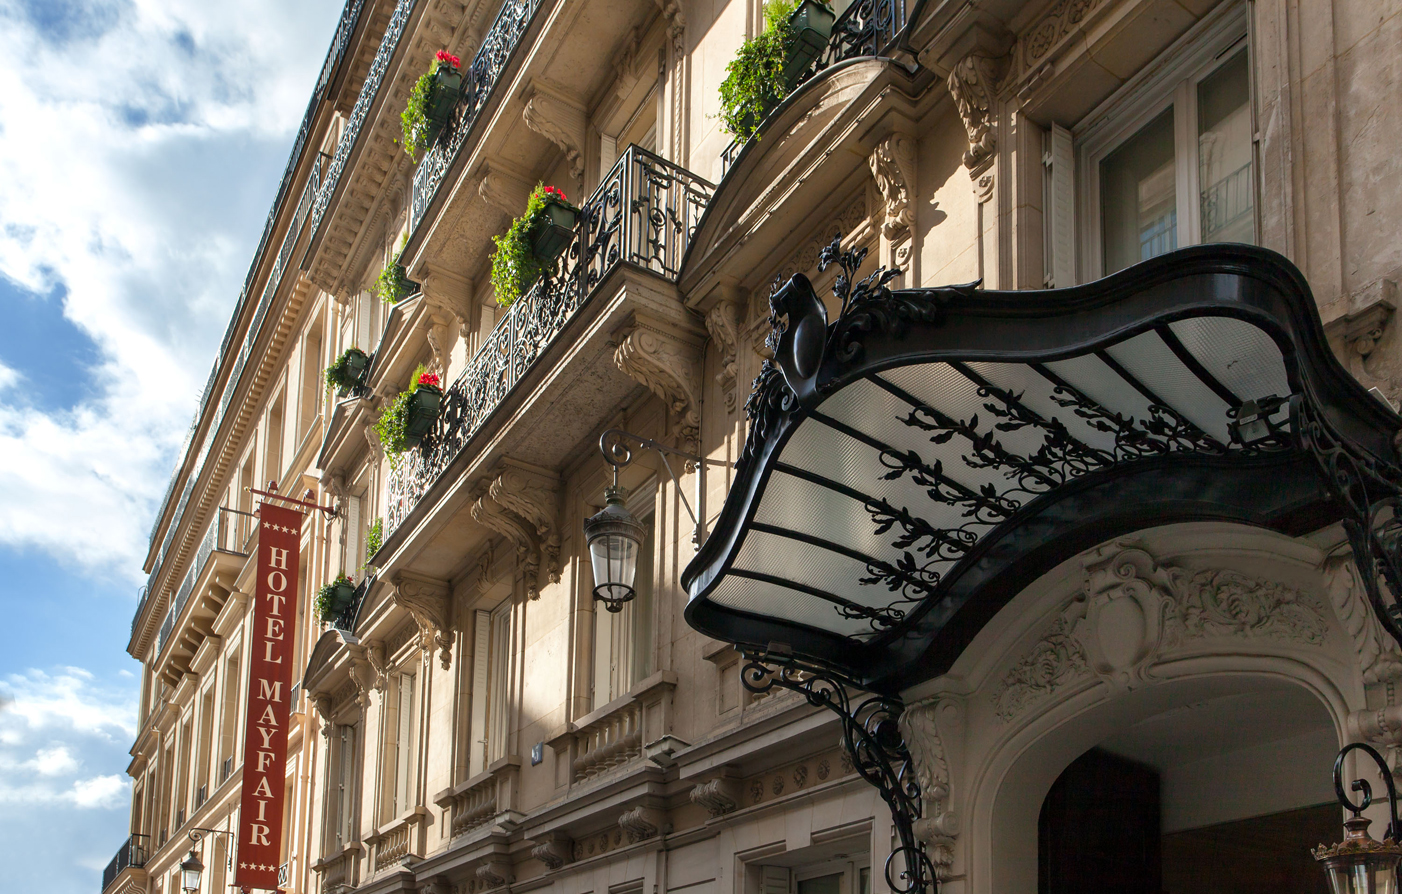 Hotel mayfair is in a prime location in paris historic for Paris hotel address